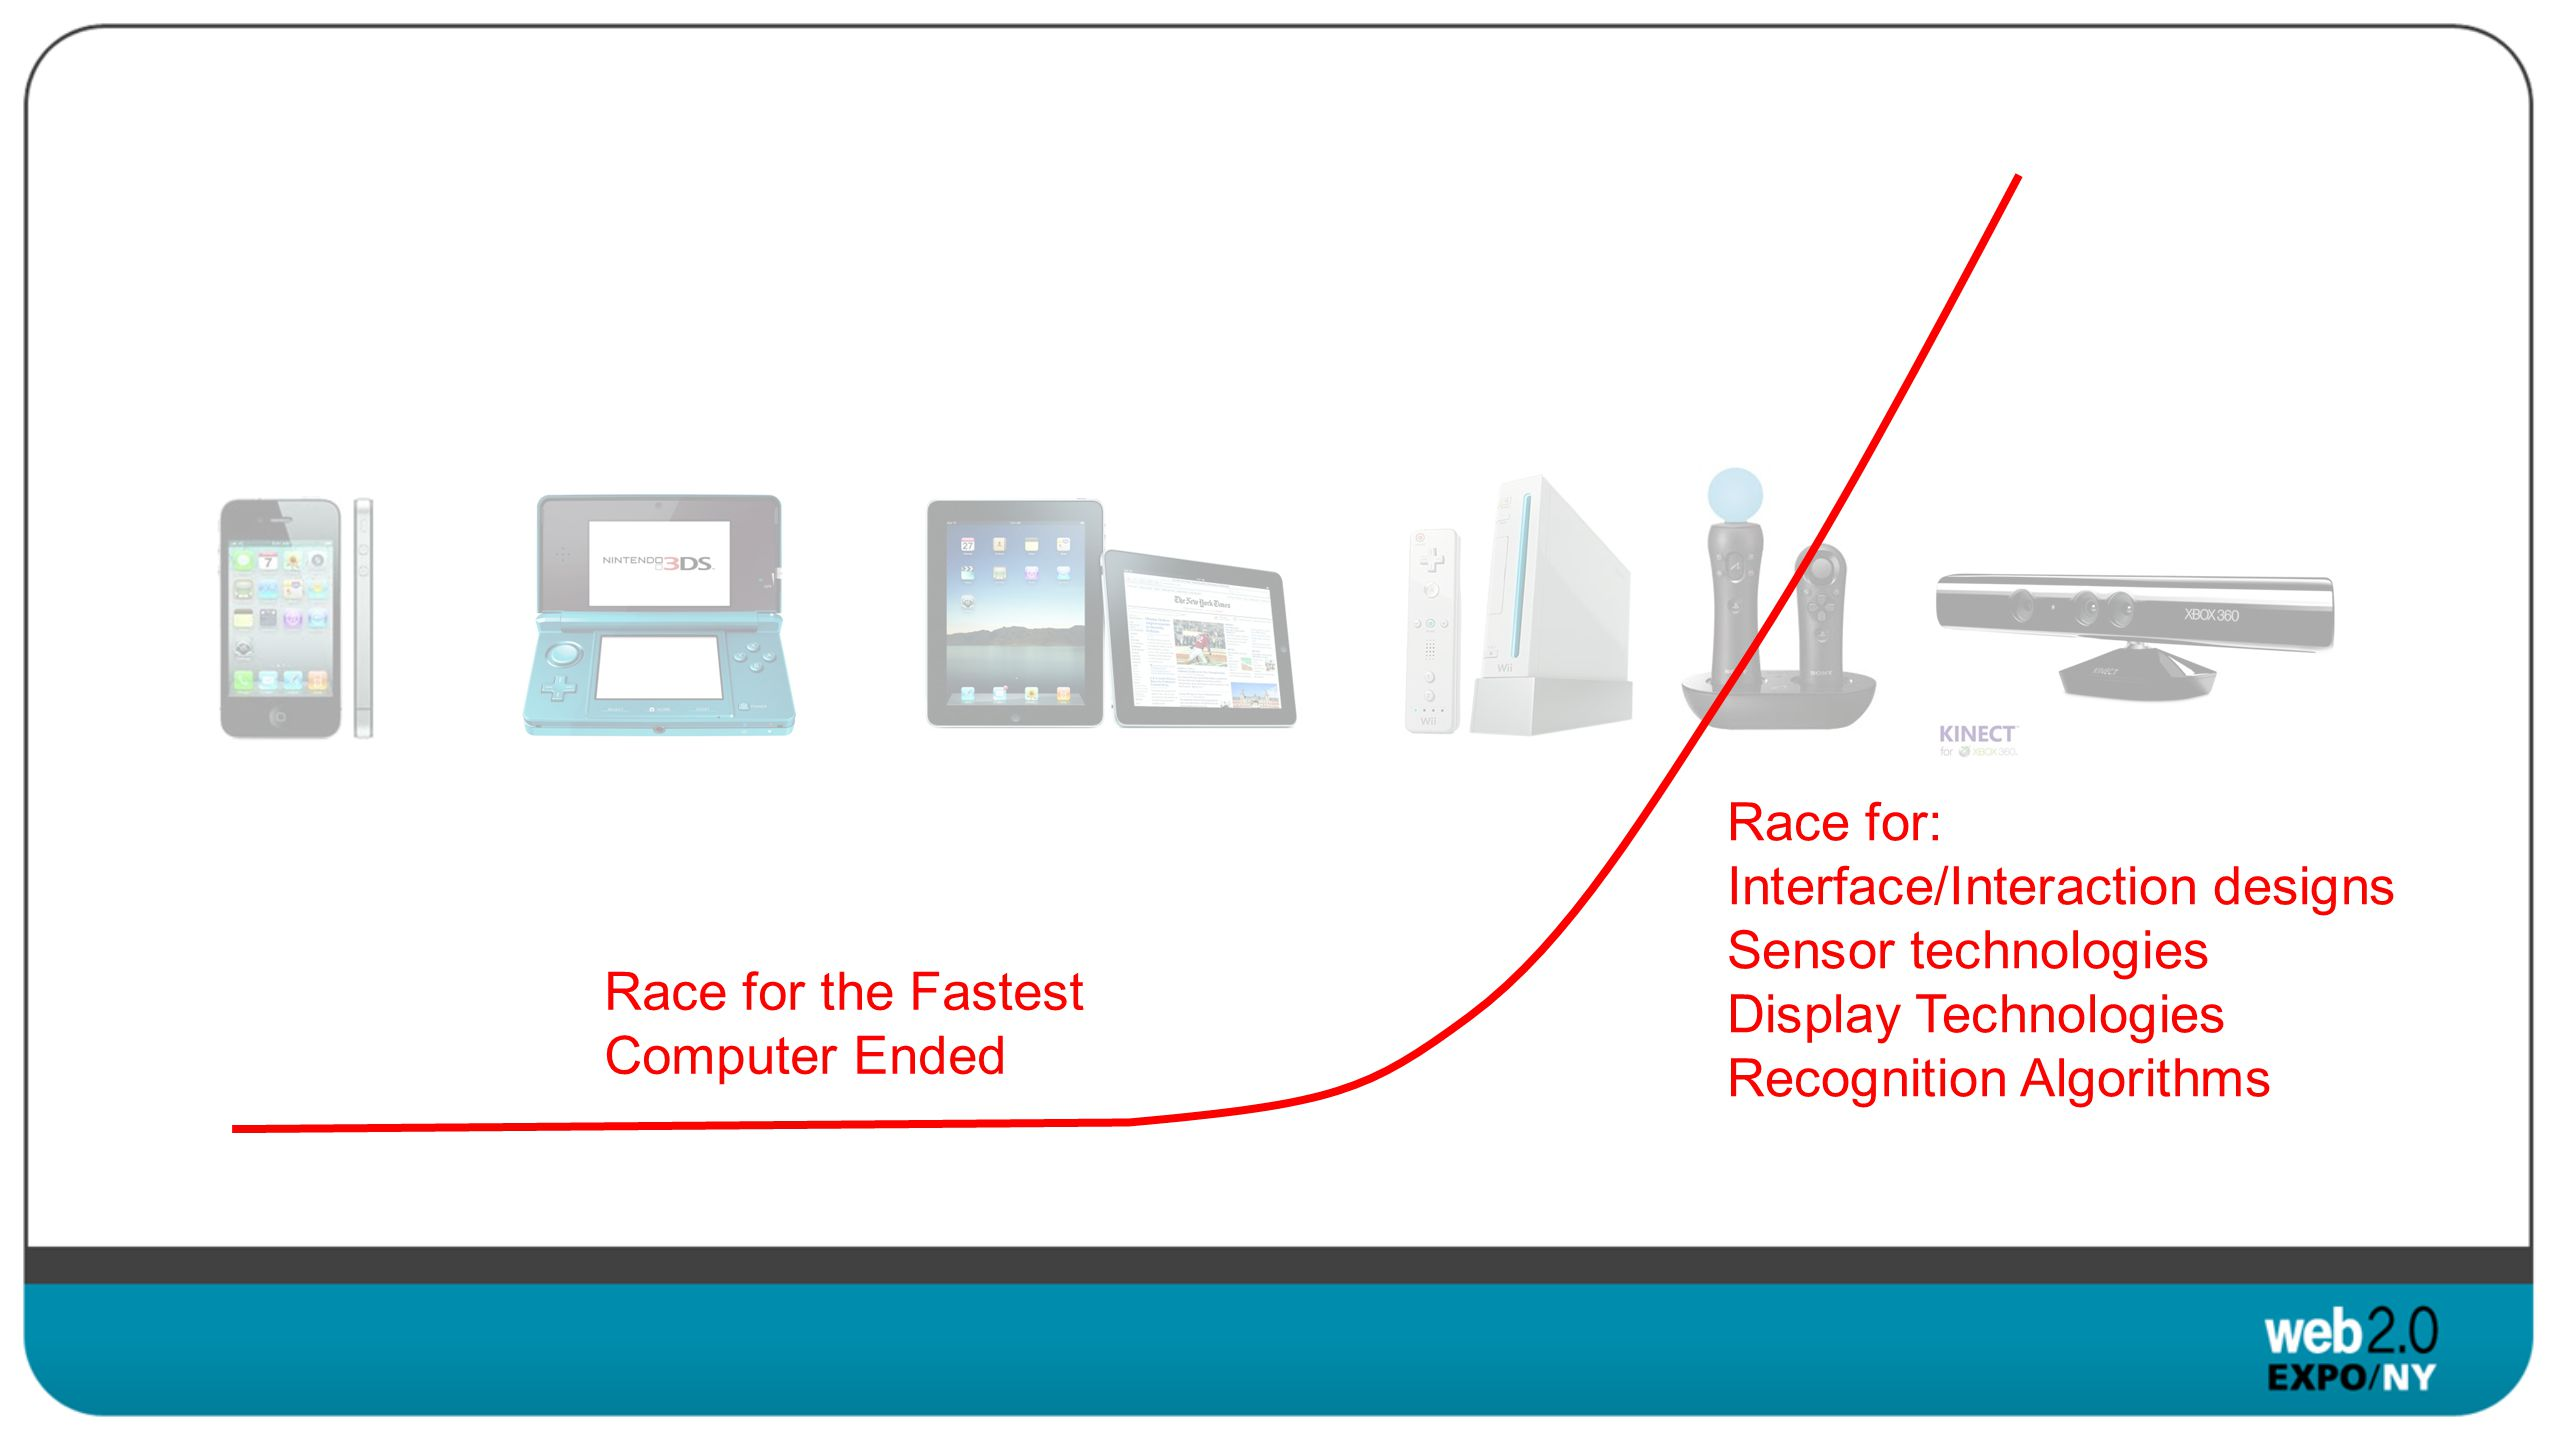 Race for: Interface/Interaction designs. Sensor technologies. Display Technologies. Recognition Algorithms.